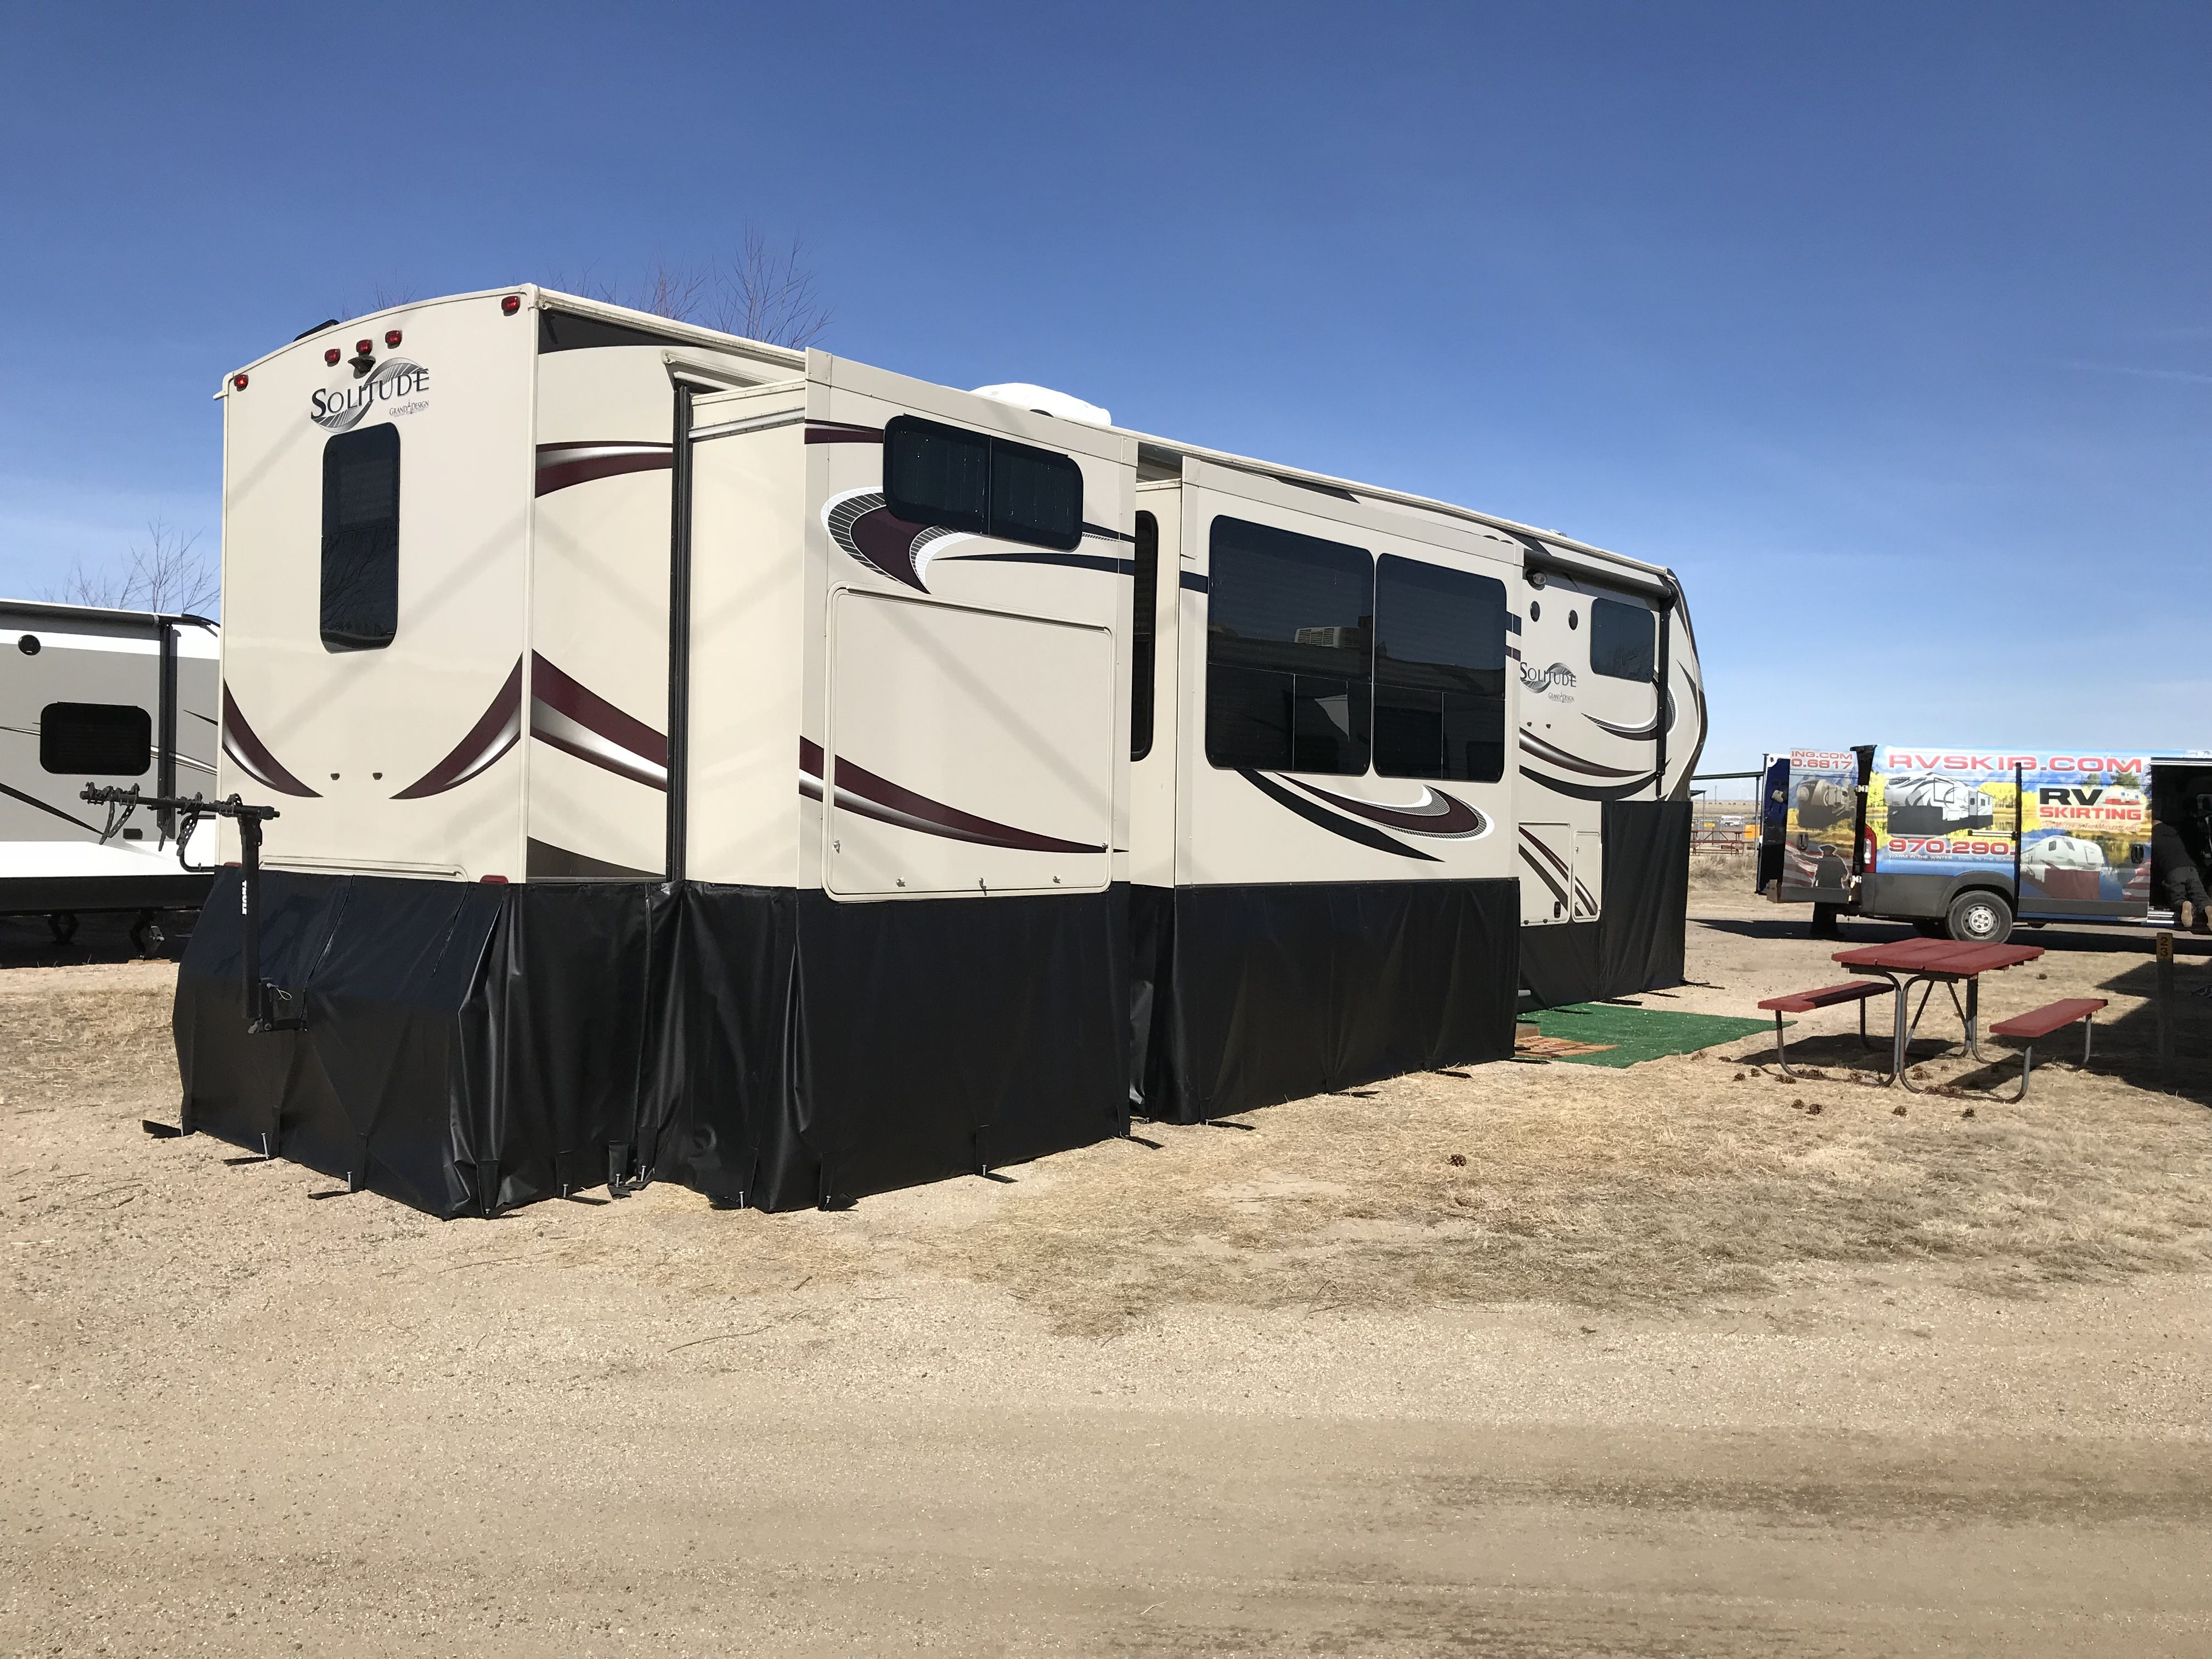 Warm In The Winter Cool In The Summer Save Propane We Have Made Tough And Rugged Rv Skirting Since 1994 A Rv Winterizing Rv Skirting Recreational Vehicles